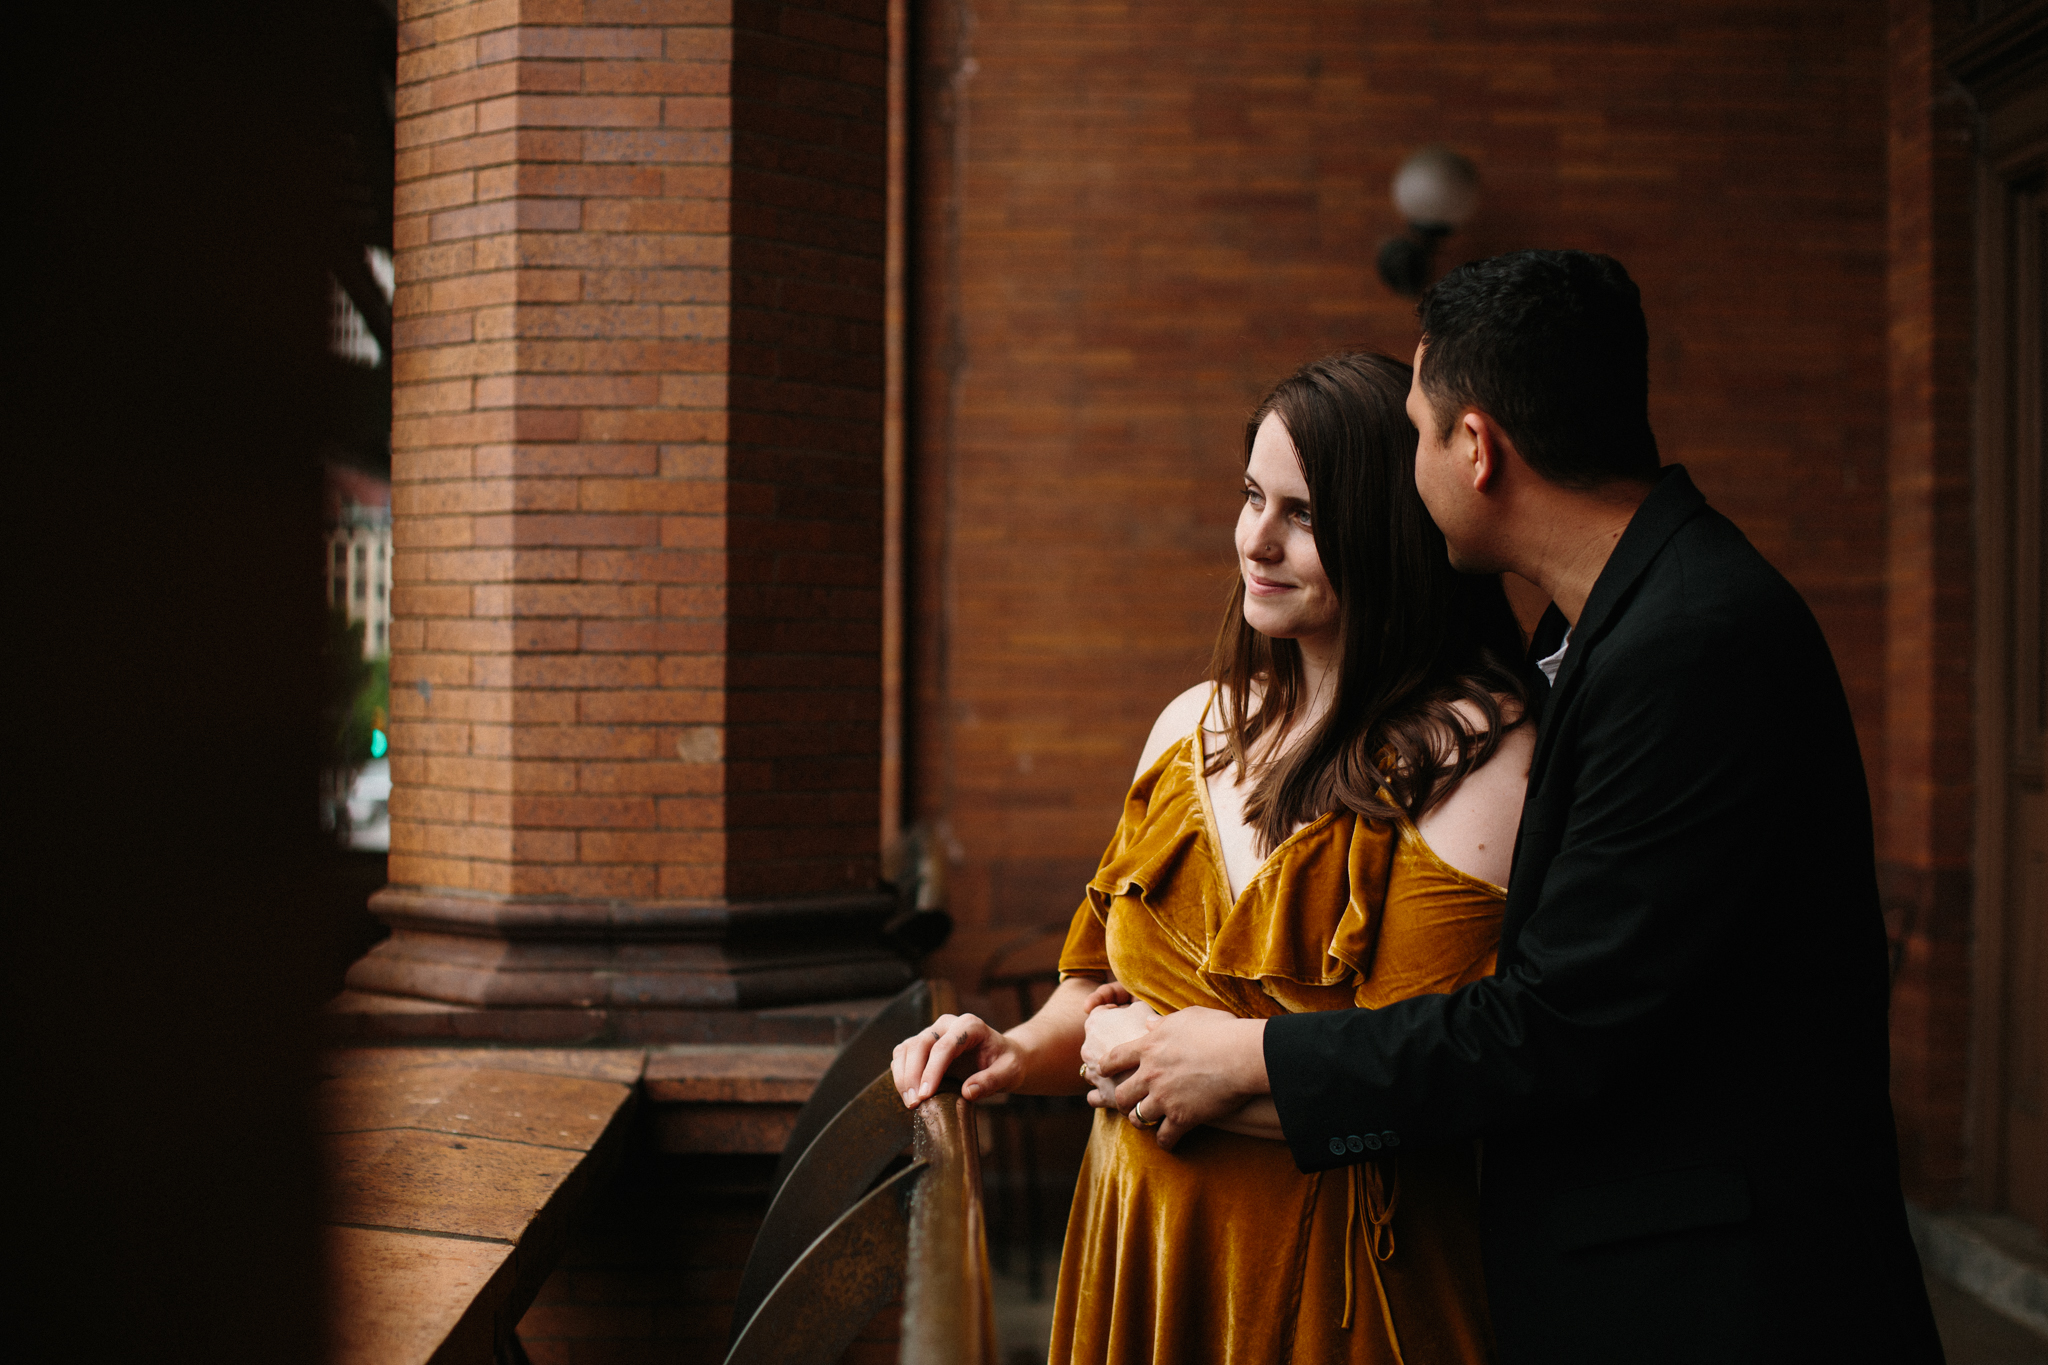 rachel_alex_richmond_engagement_session_mainstreetstation_rebeccaburtphotography-41.jpg